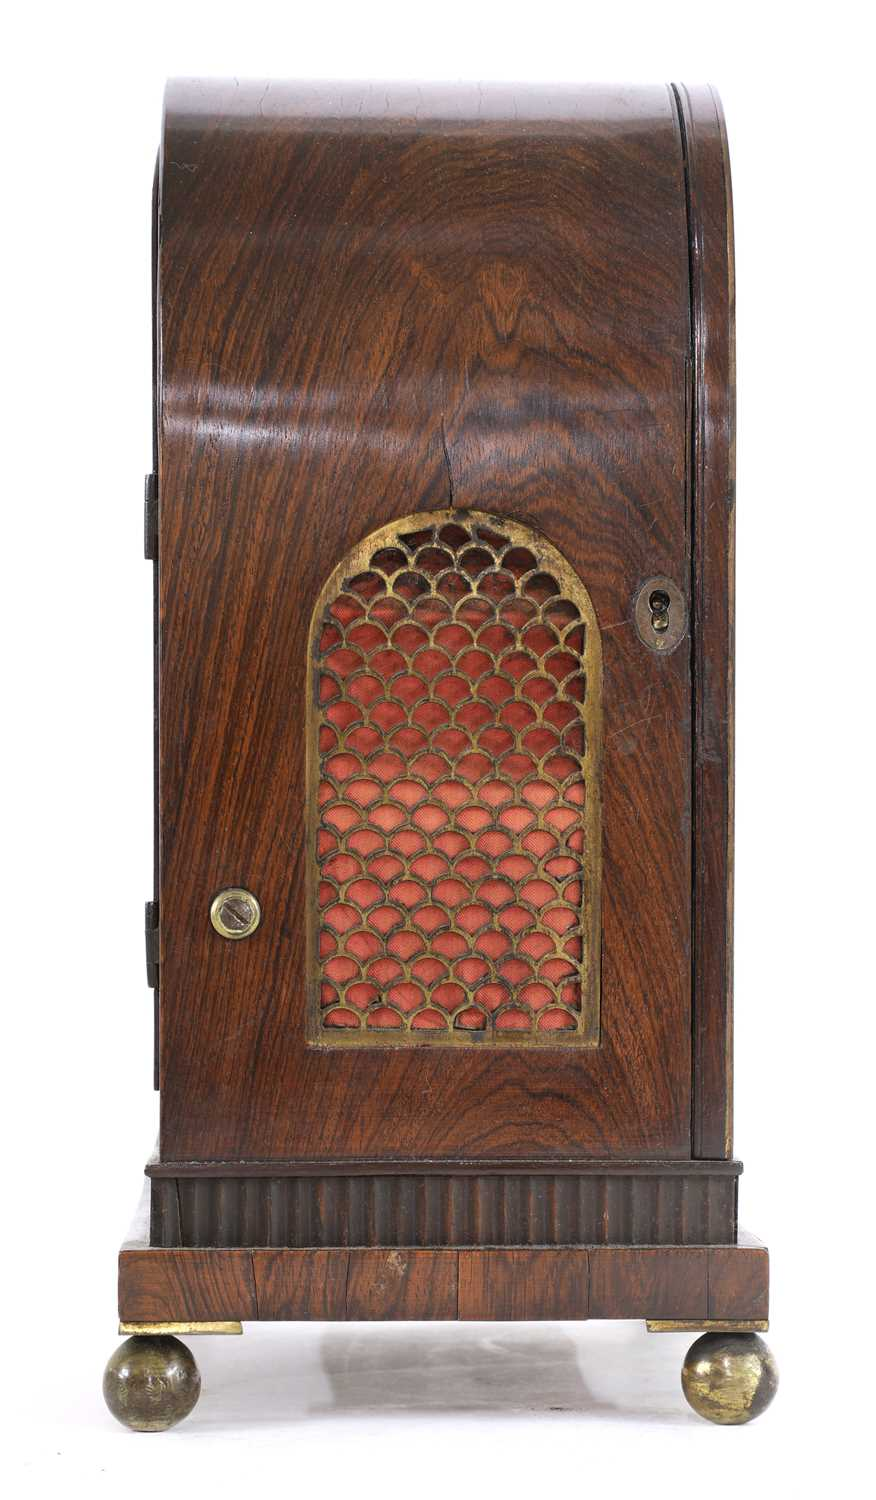 A Regency brass inlaid rosewood mantel clock, - Image 10 of 11